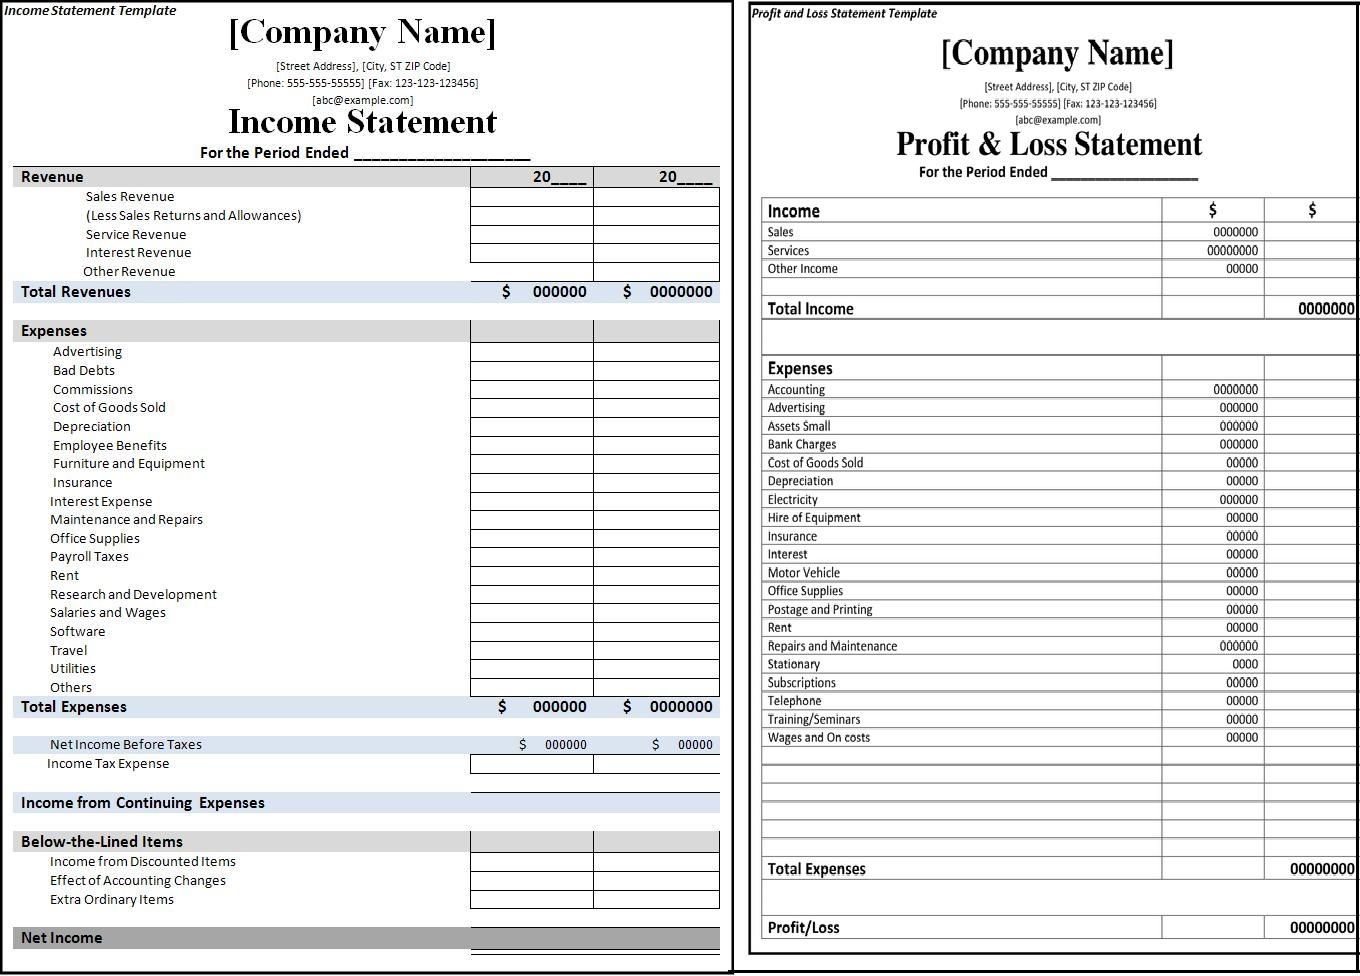 Generic Profit And Loss Statement simple checklist template – Basic Profit and Loss Statement Template